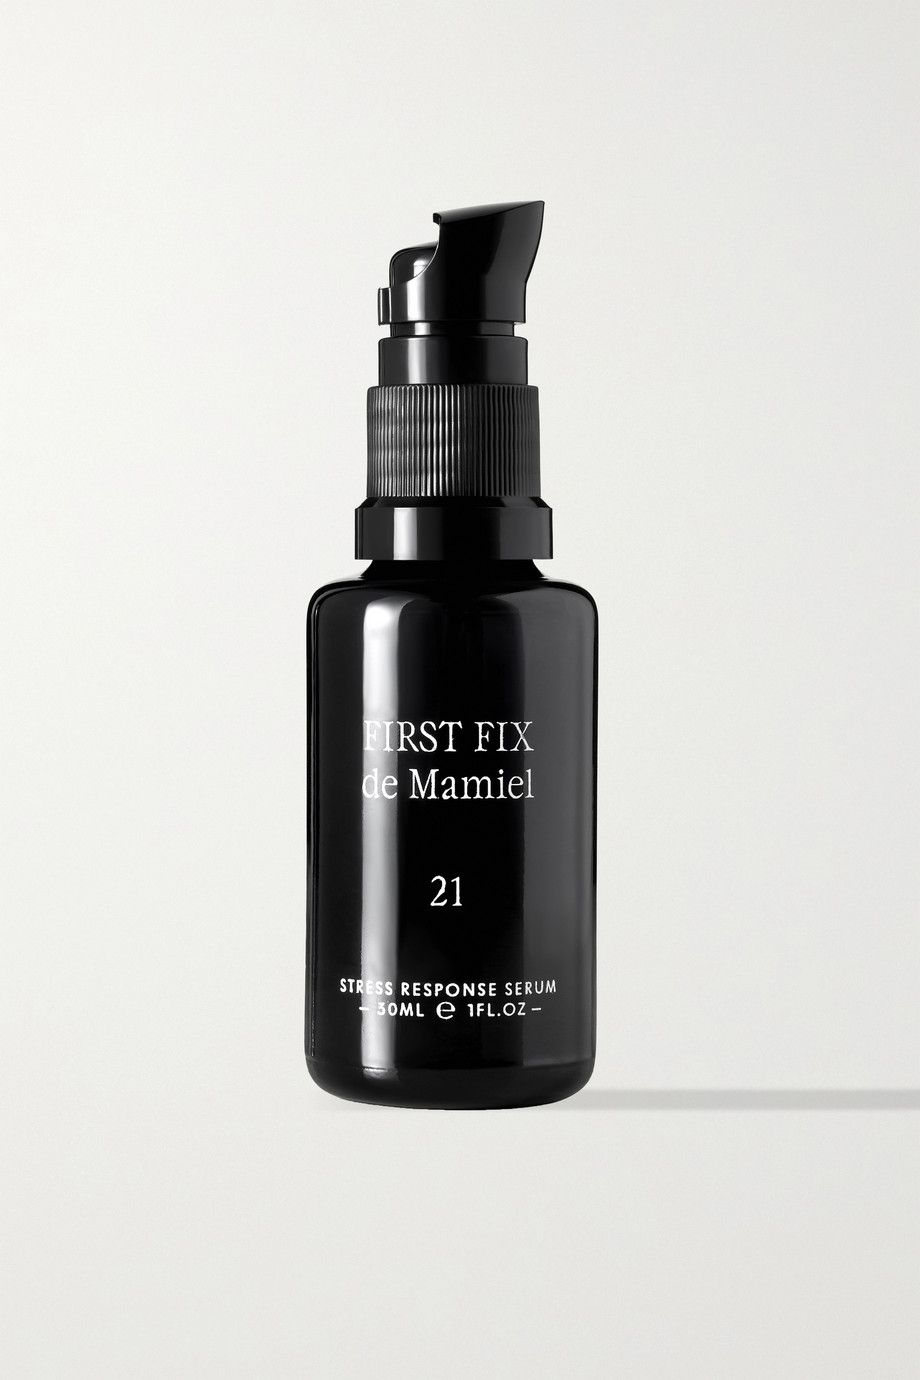 de Mamiel Sérum de réponse au stress First Fix, 30 ml